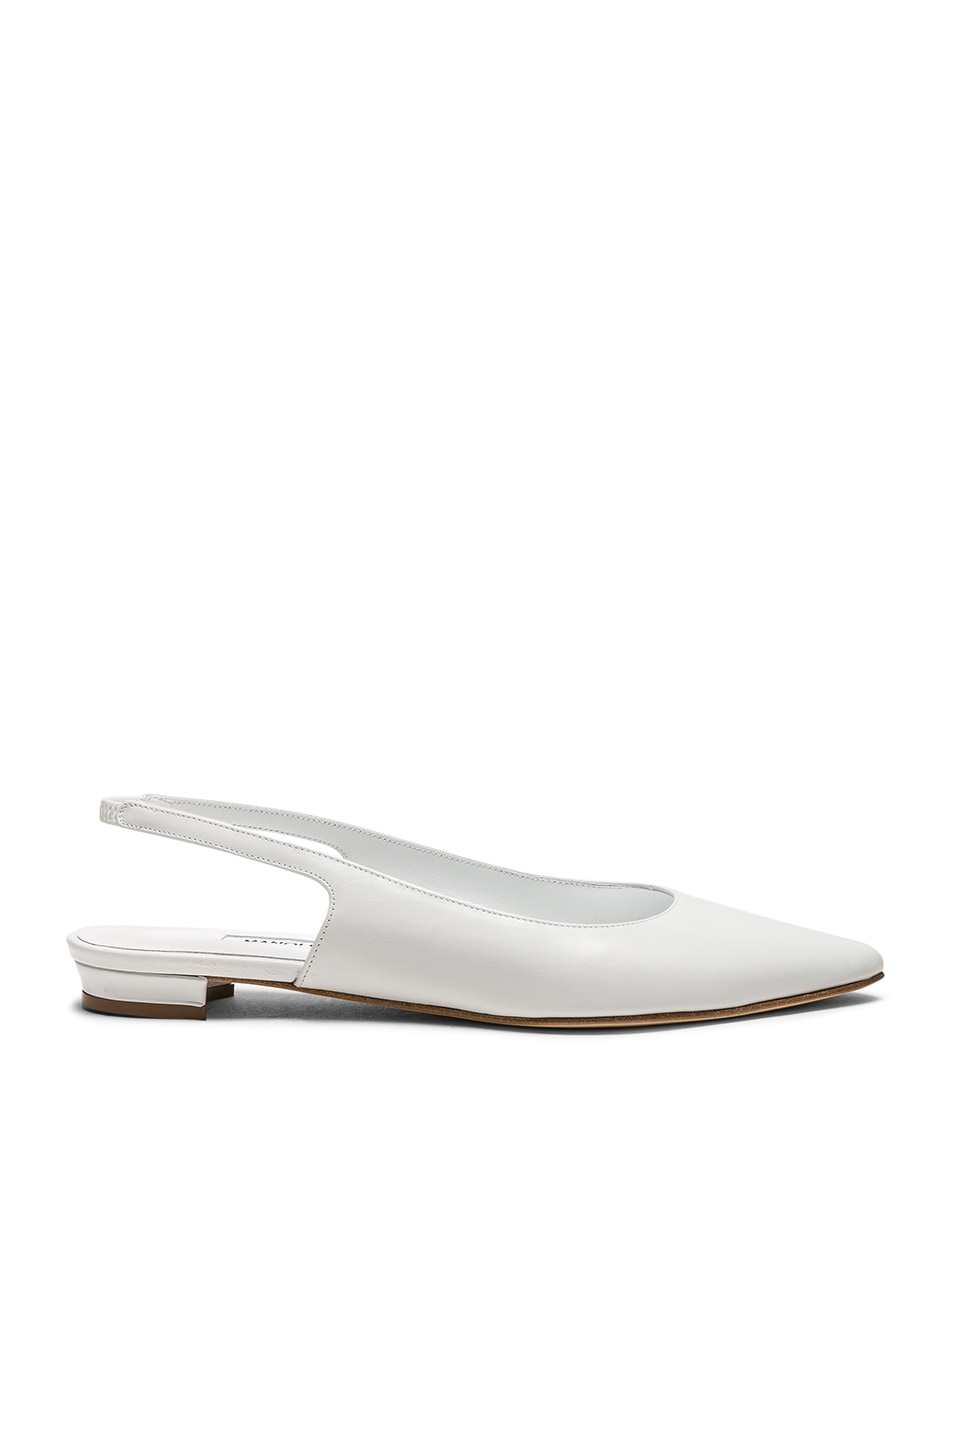 Image 1 of Manolo Blahnik Leather Allura Flats in White Calf